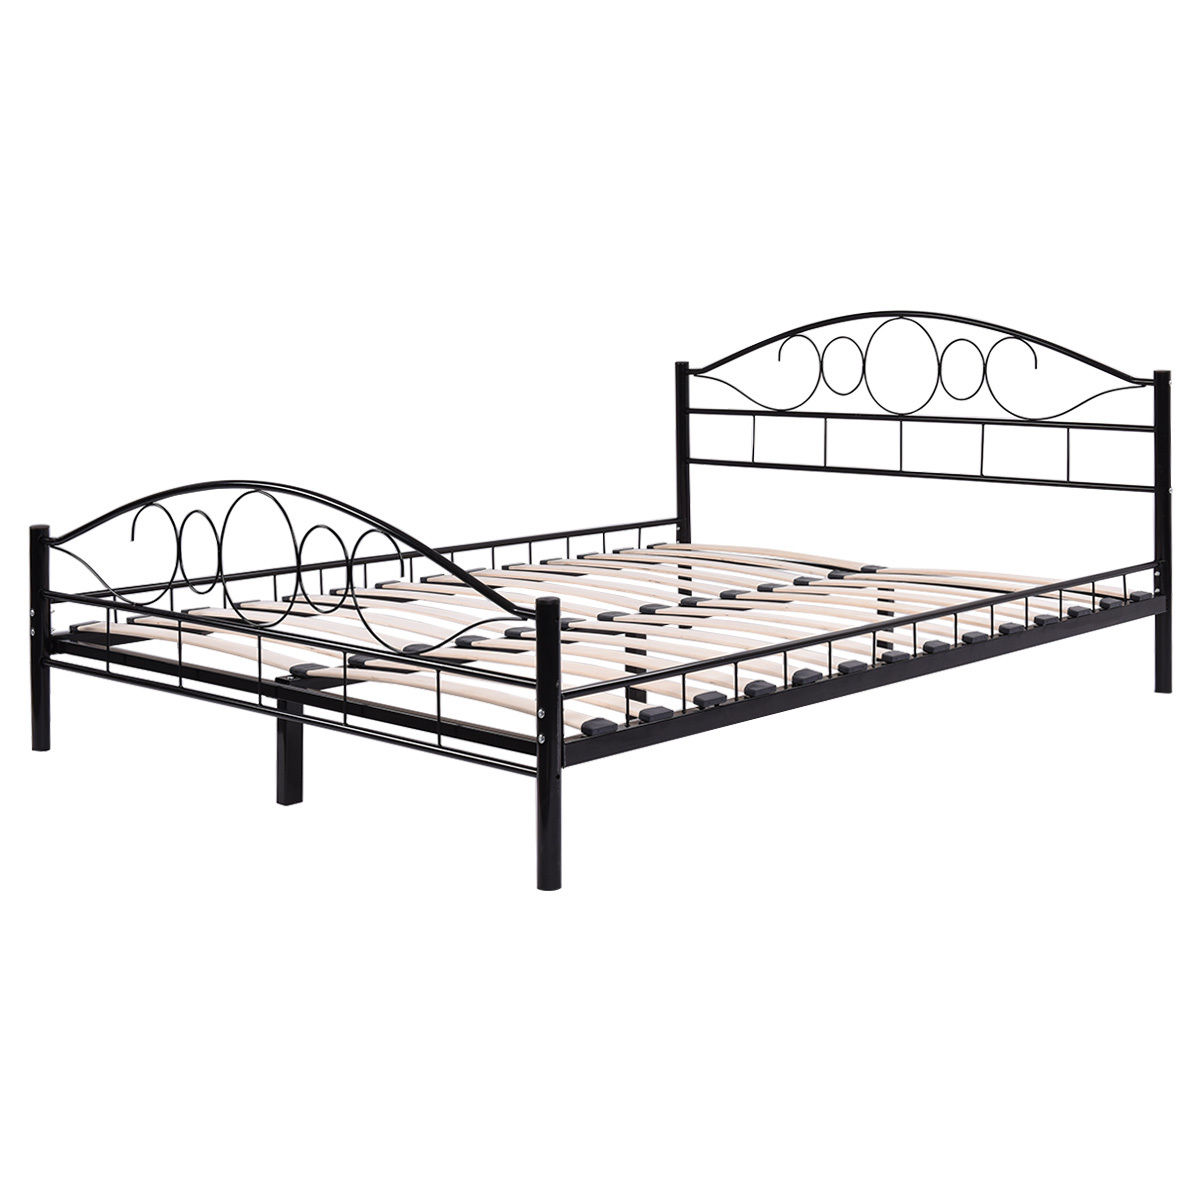 Goplus queen size wood slats steel bed frame platform headboard footboard black walmart com